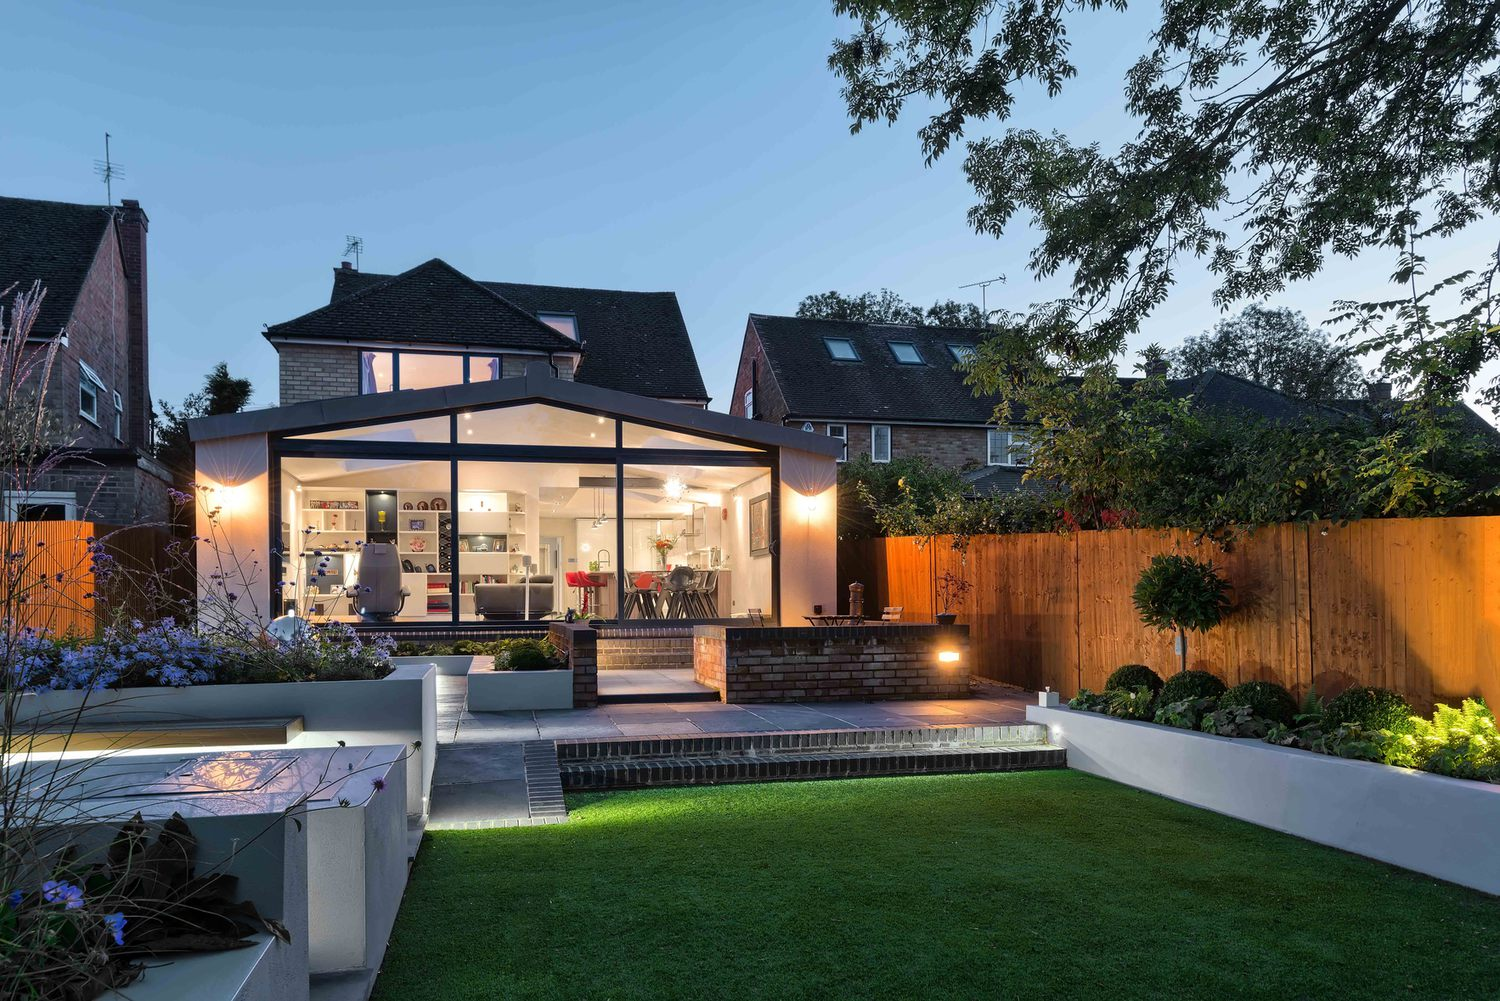 The garden view of a modern house extension by Harvey Norman Architects St Albans